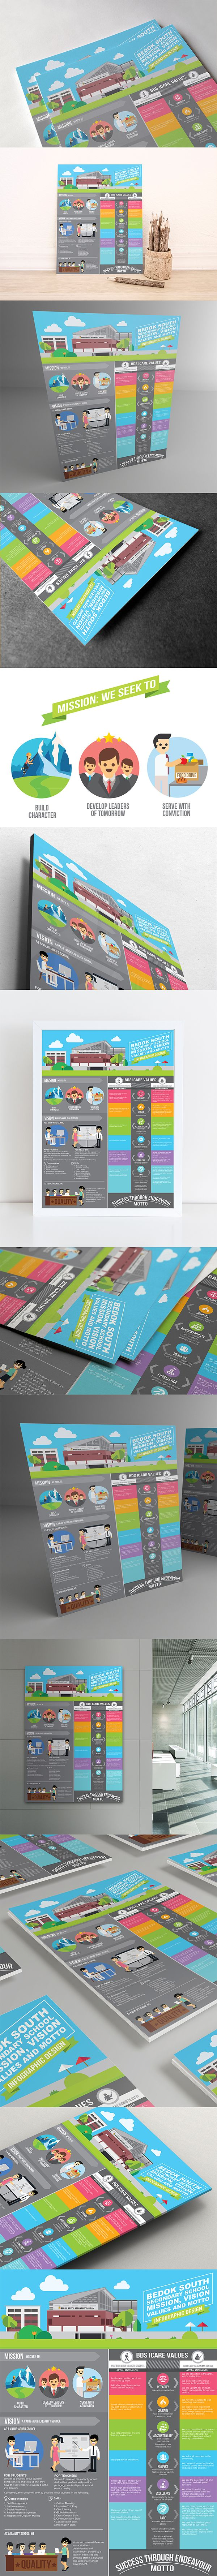 https://www.behance.net/gallery/27320115/Bedok-south-secondary-school-infographic-design  http://www.lemongraphic.sg/2015/06/22/bedok-south-secondary-school-infographic-design/  Bedok south secondary school #bds #infographic #design that summarise it's #mission, #vision, #values and #motto in one #poster. #Success through Endeavour! #singapore #sg